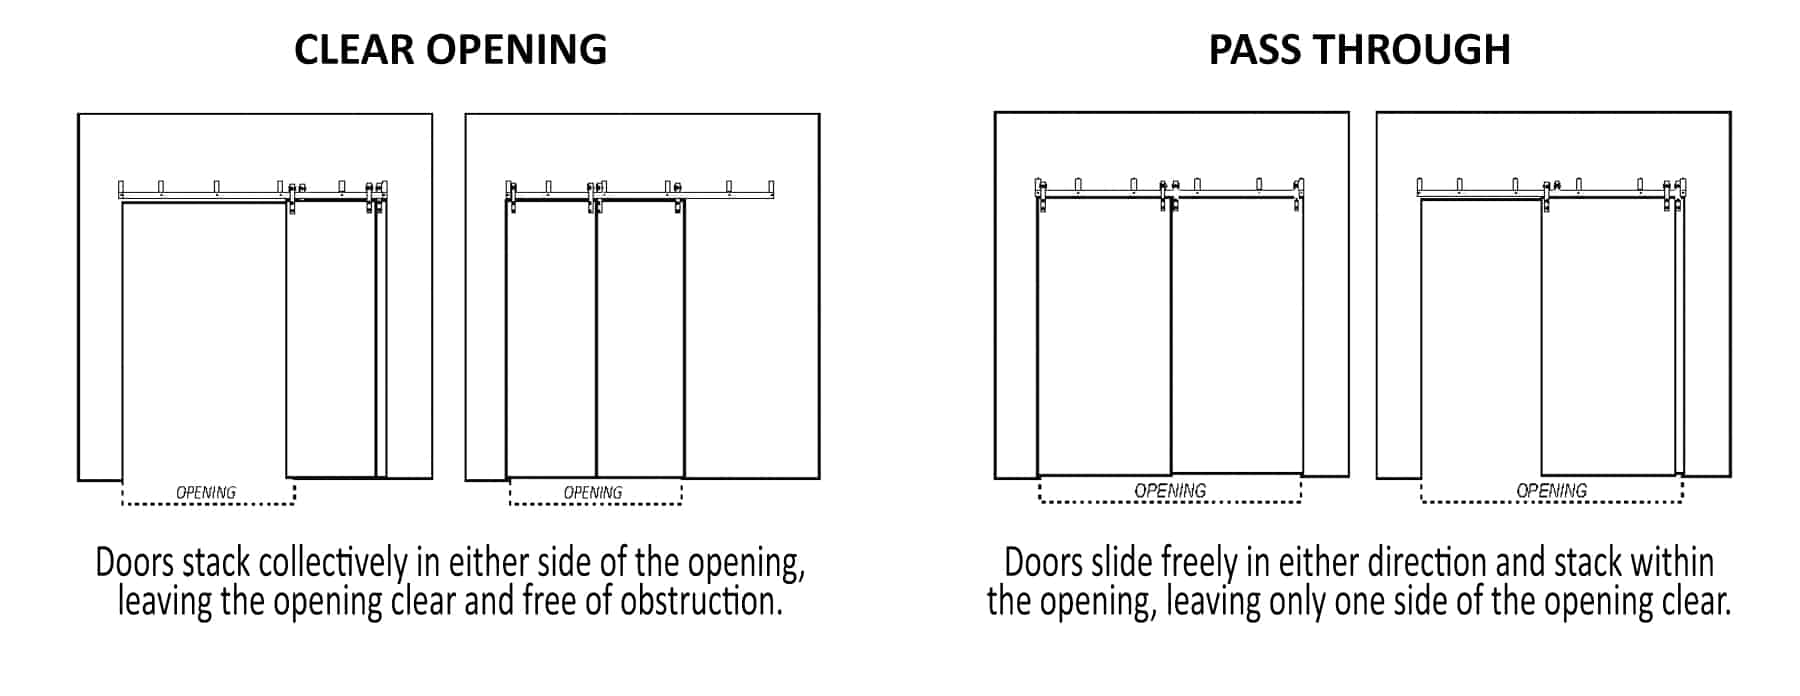 instructional image illustrating clear opening and pass through configurations for bypass barn doors